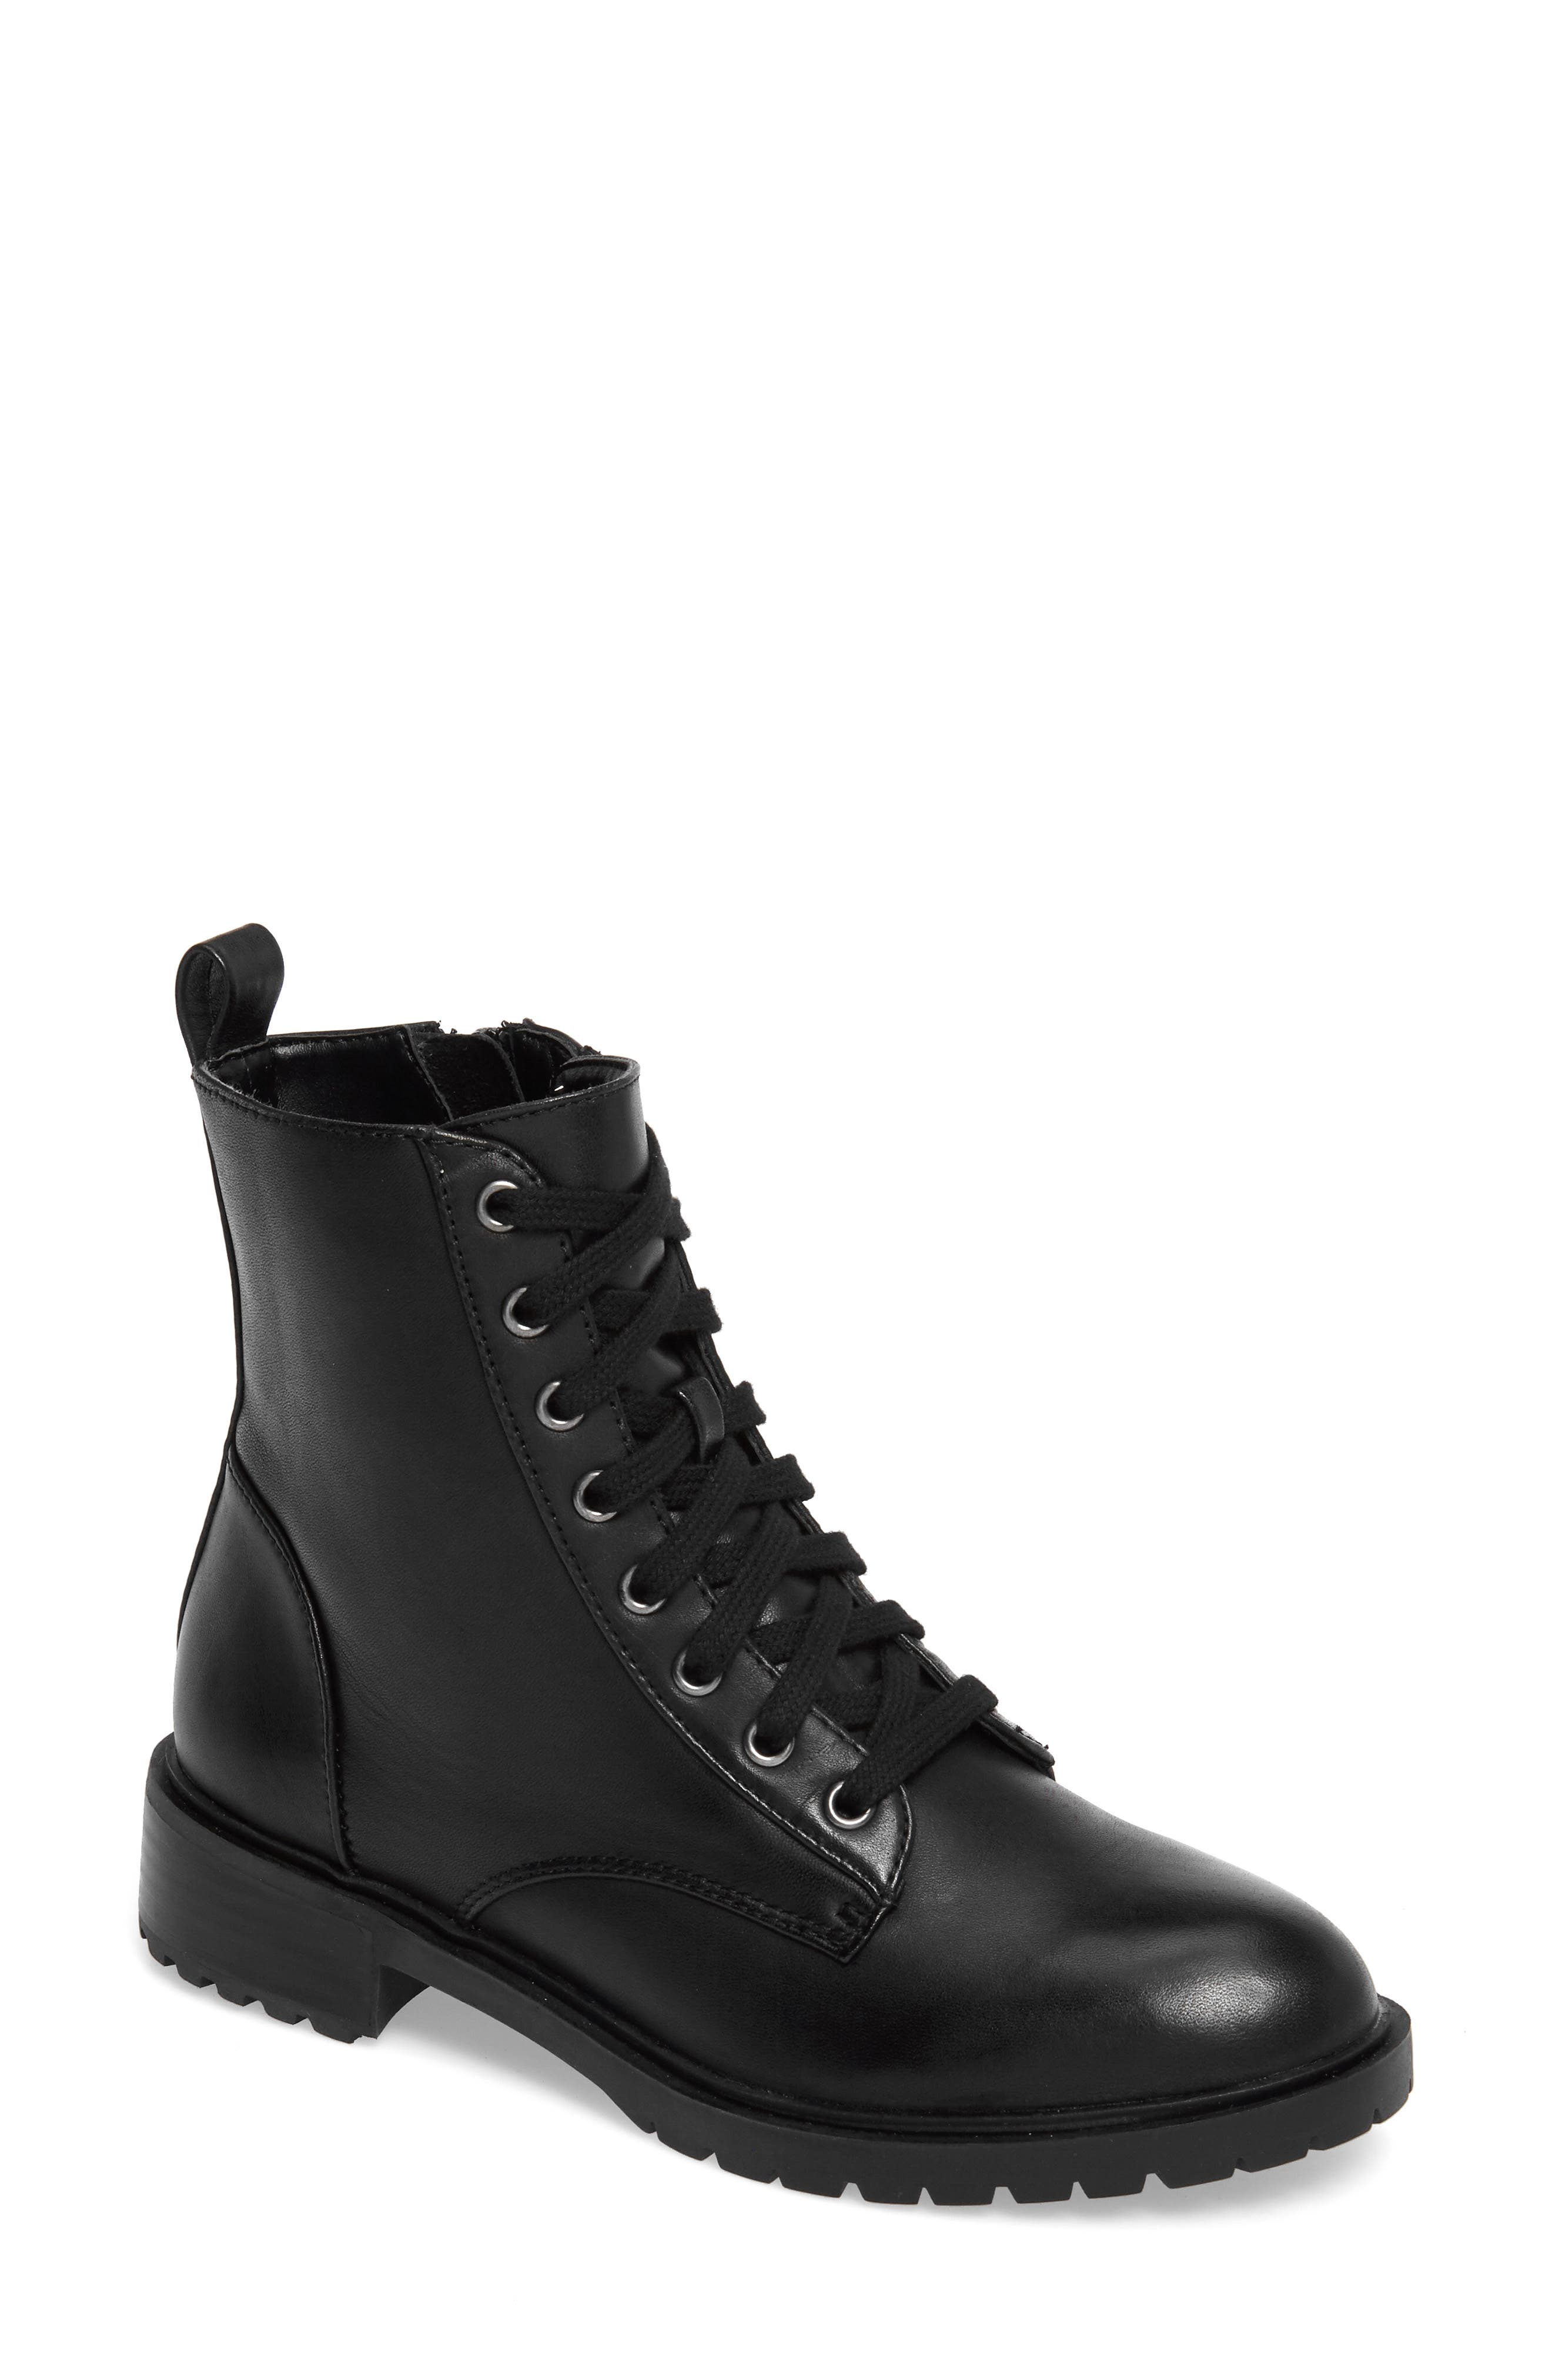 Officer Combat Boot,                         Main,                         color, Black Leather